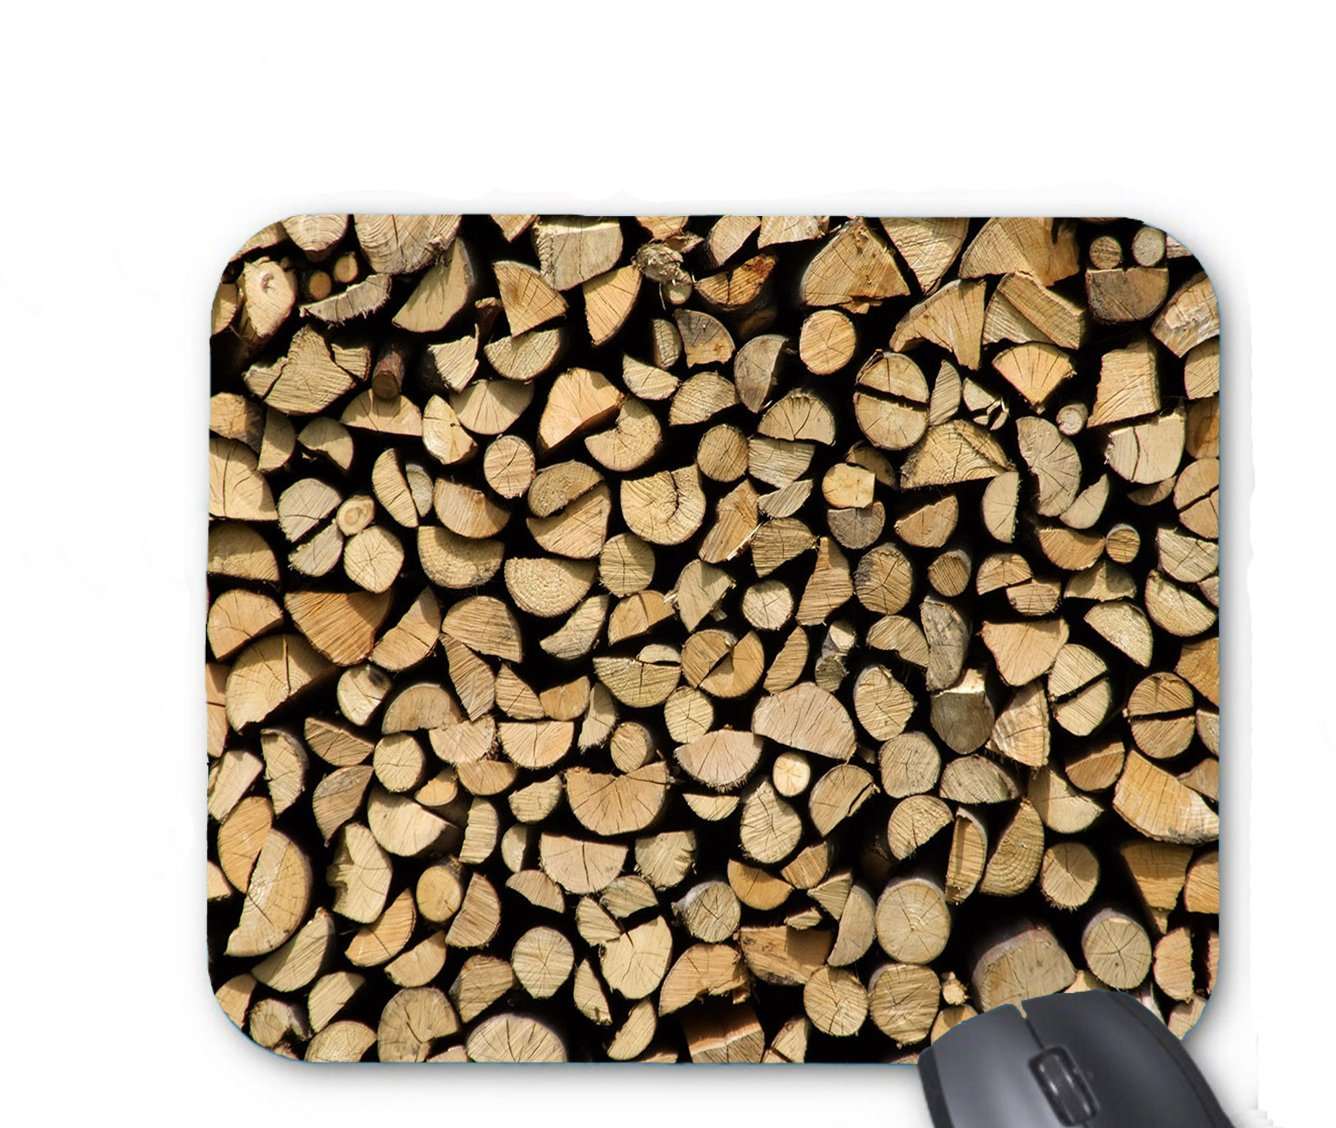 Wood piled wall picture Mouse pad 9.84 x 11.8 inch